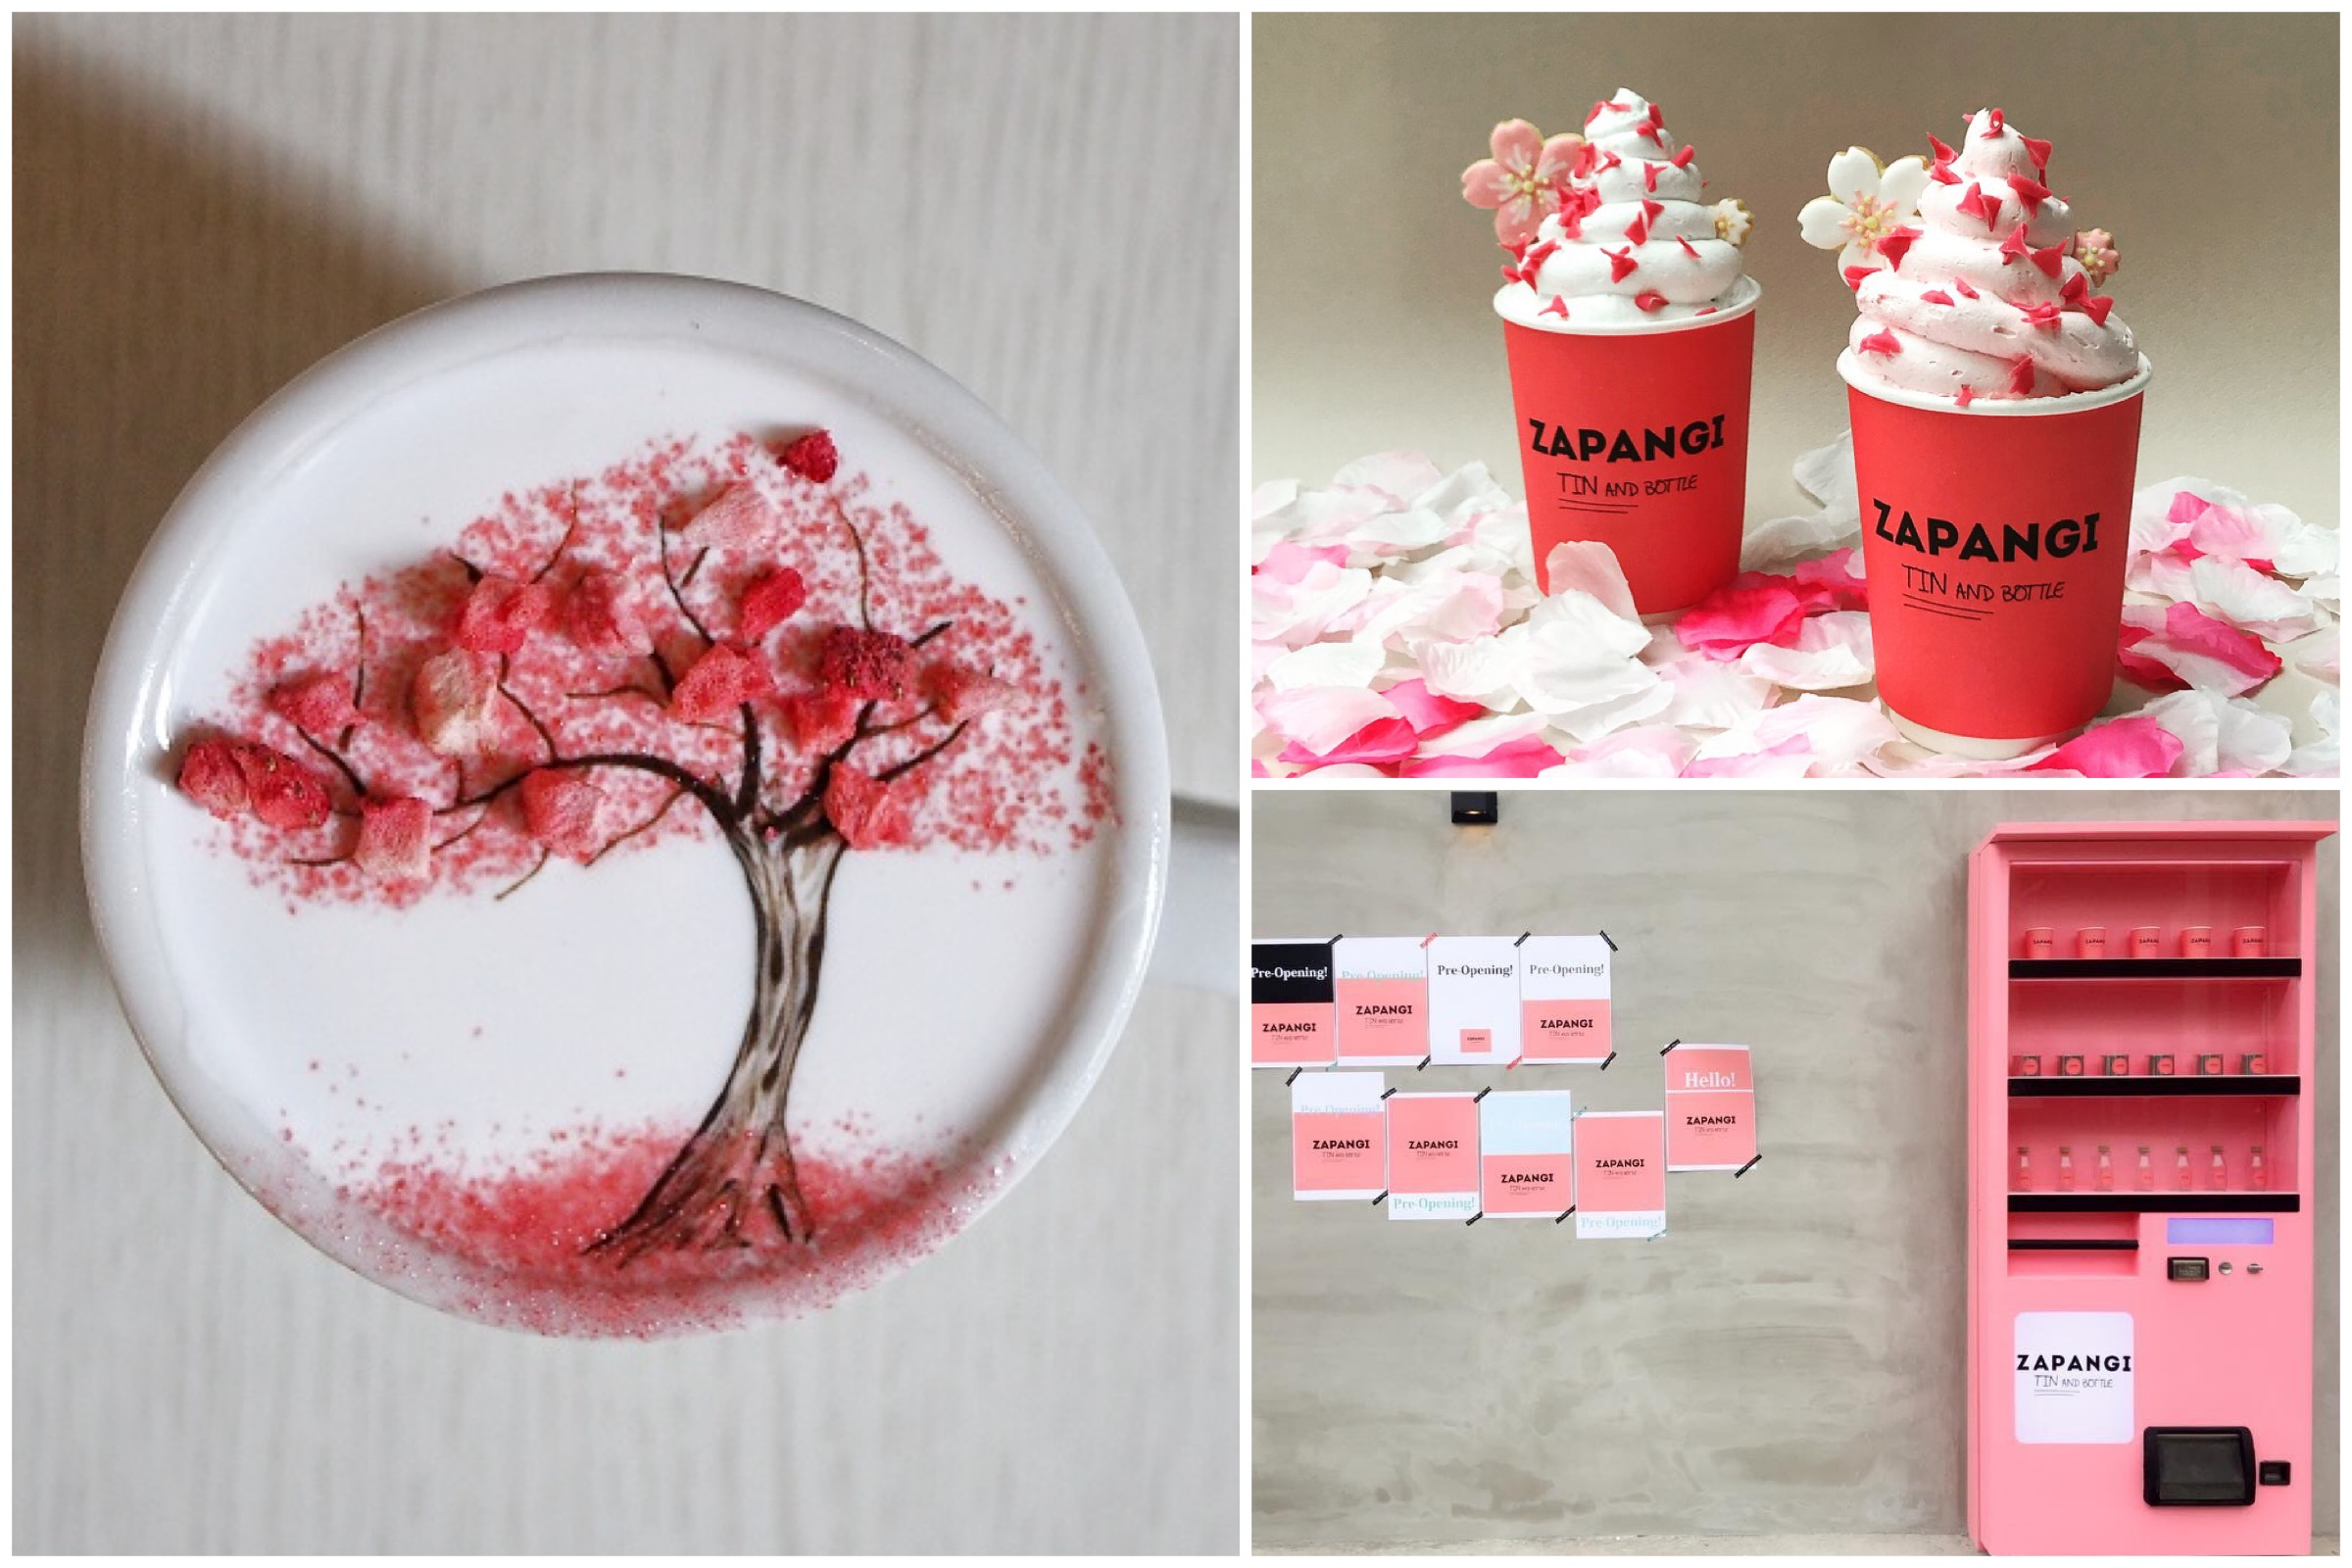 10 Most Instagrammable Cafes In Seoul, Including One Hidden Behind A Pink Vending Machine